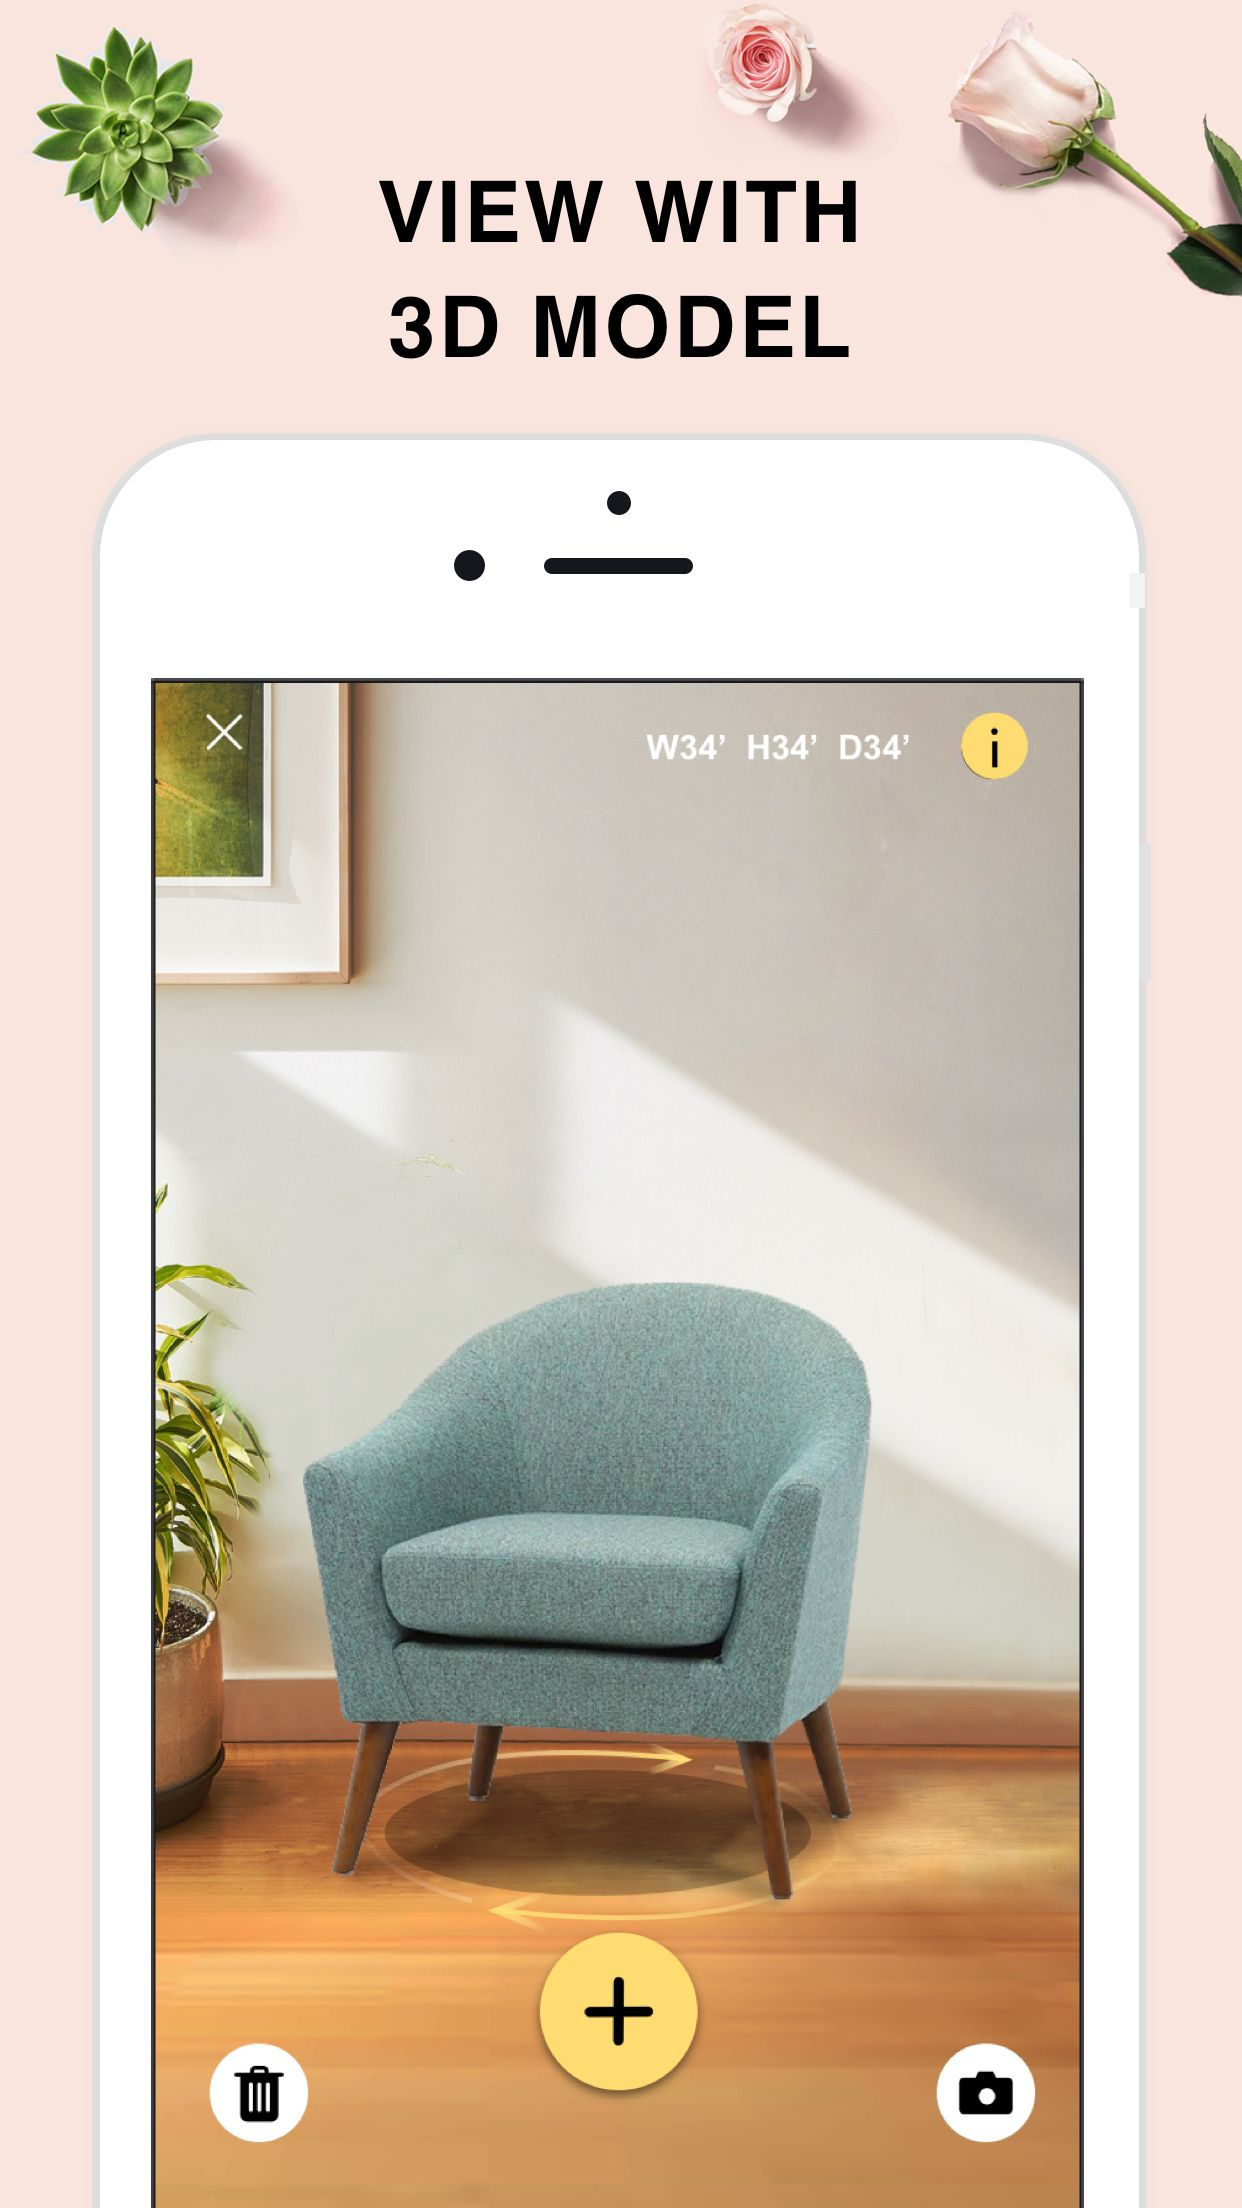 3d Model In One Free Ar Design App That Makes Your Home